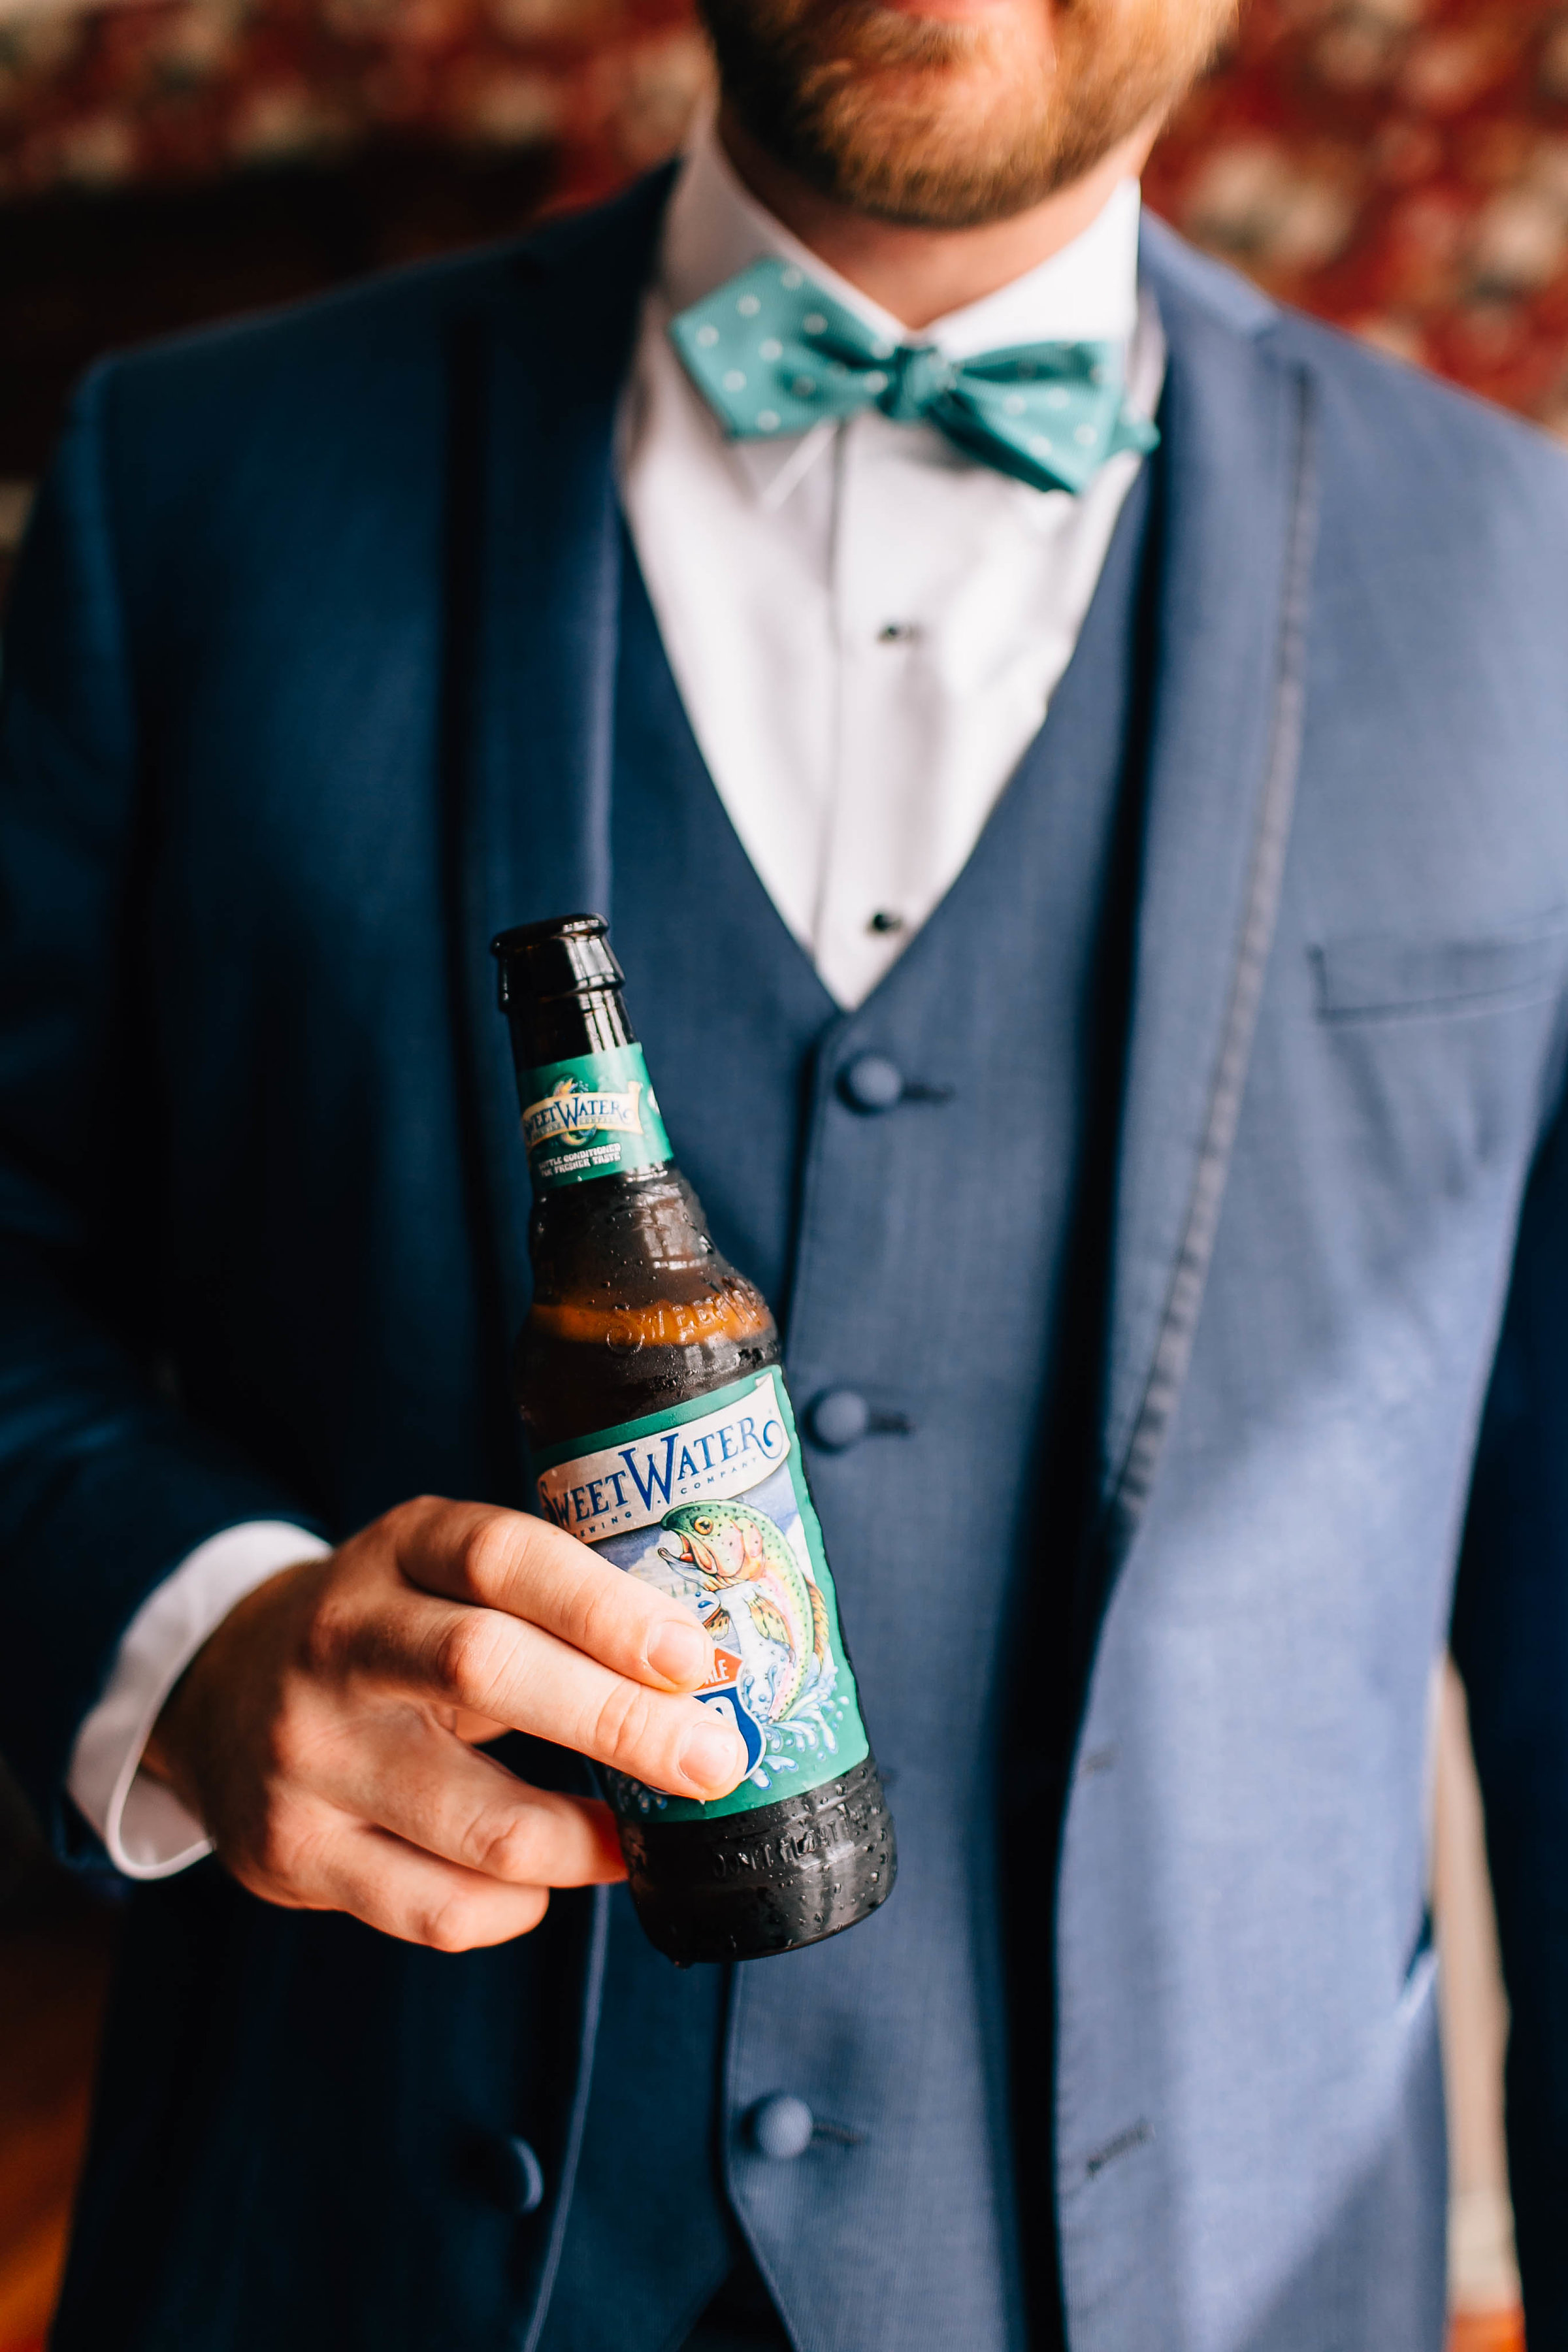 Groom with bowtie & Sweetwater Beer